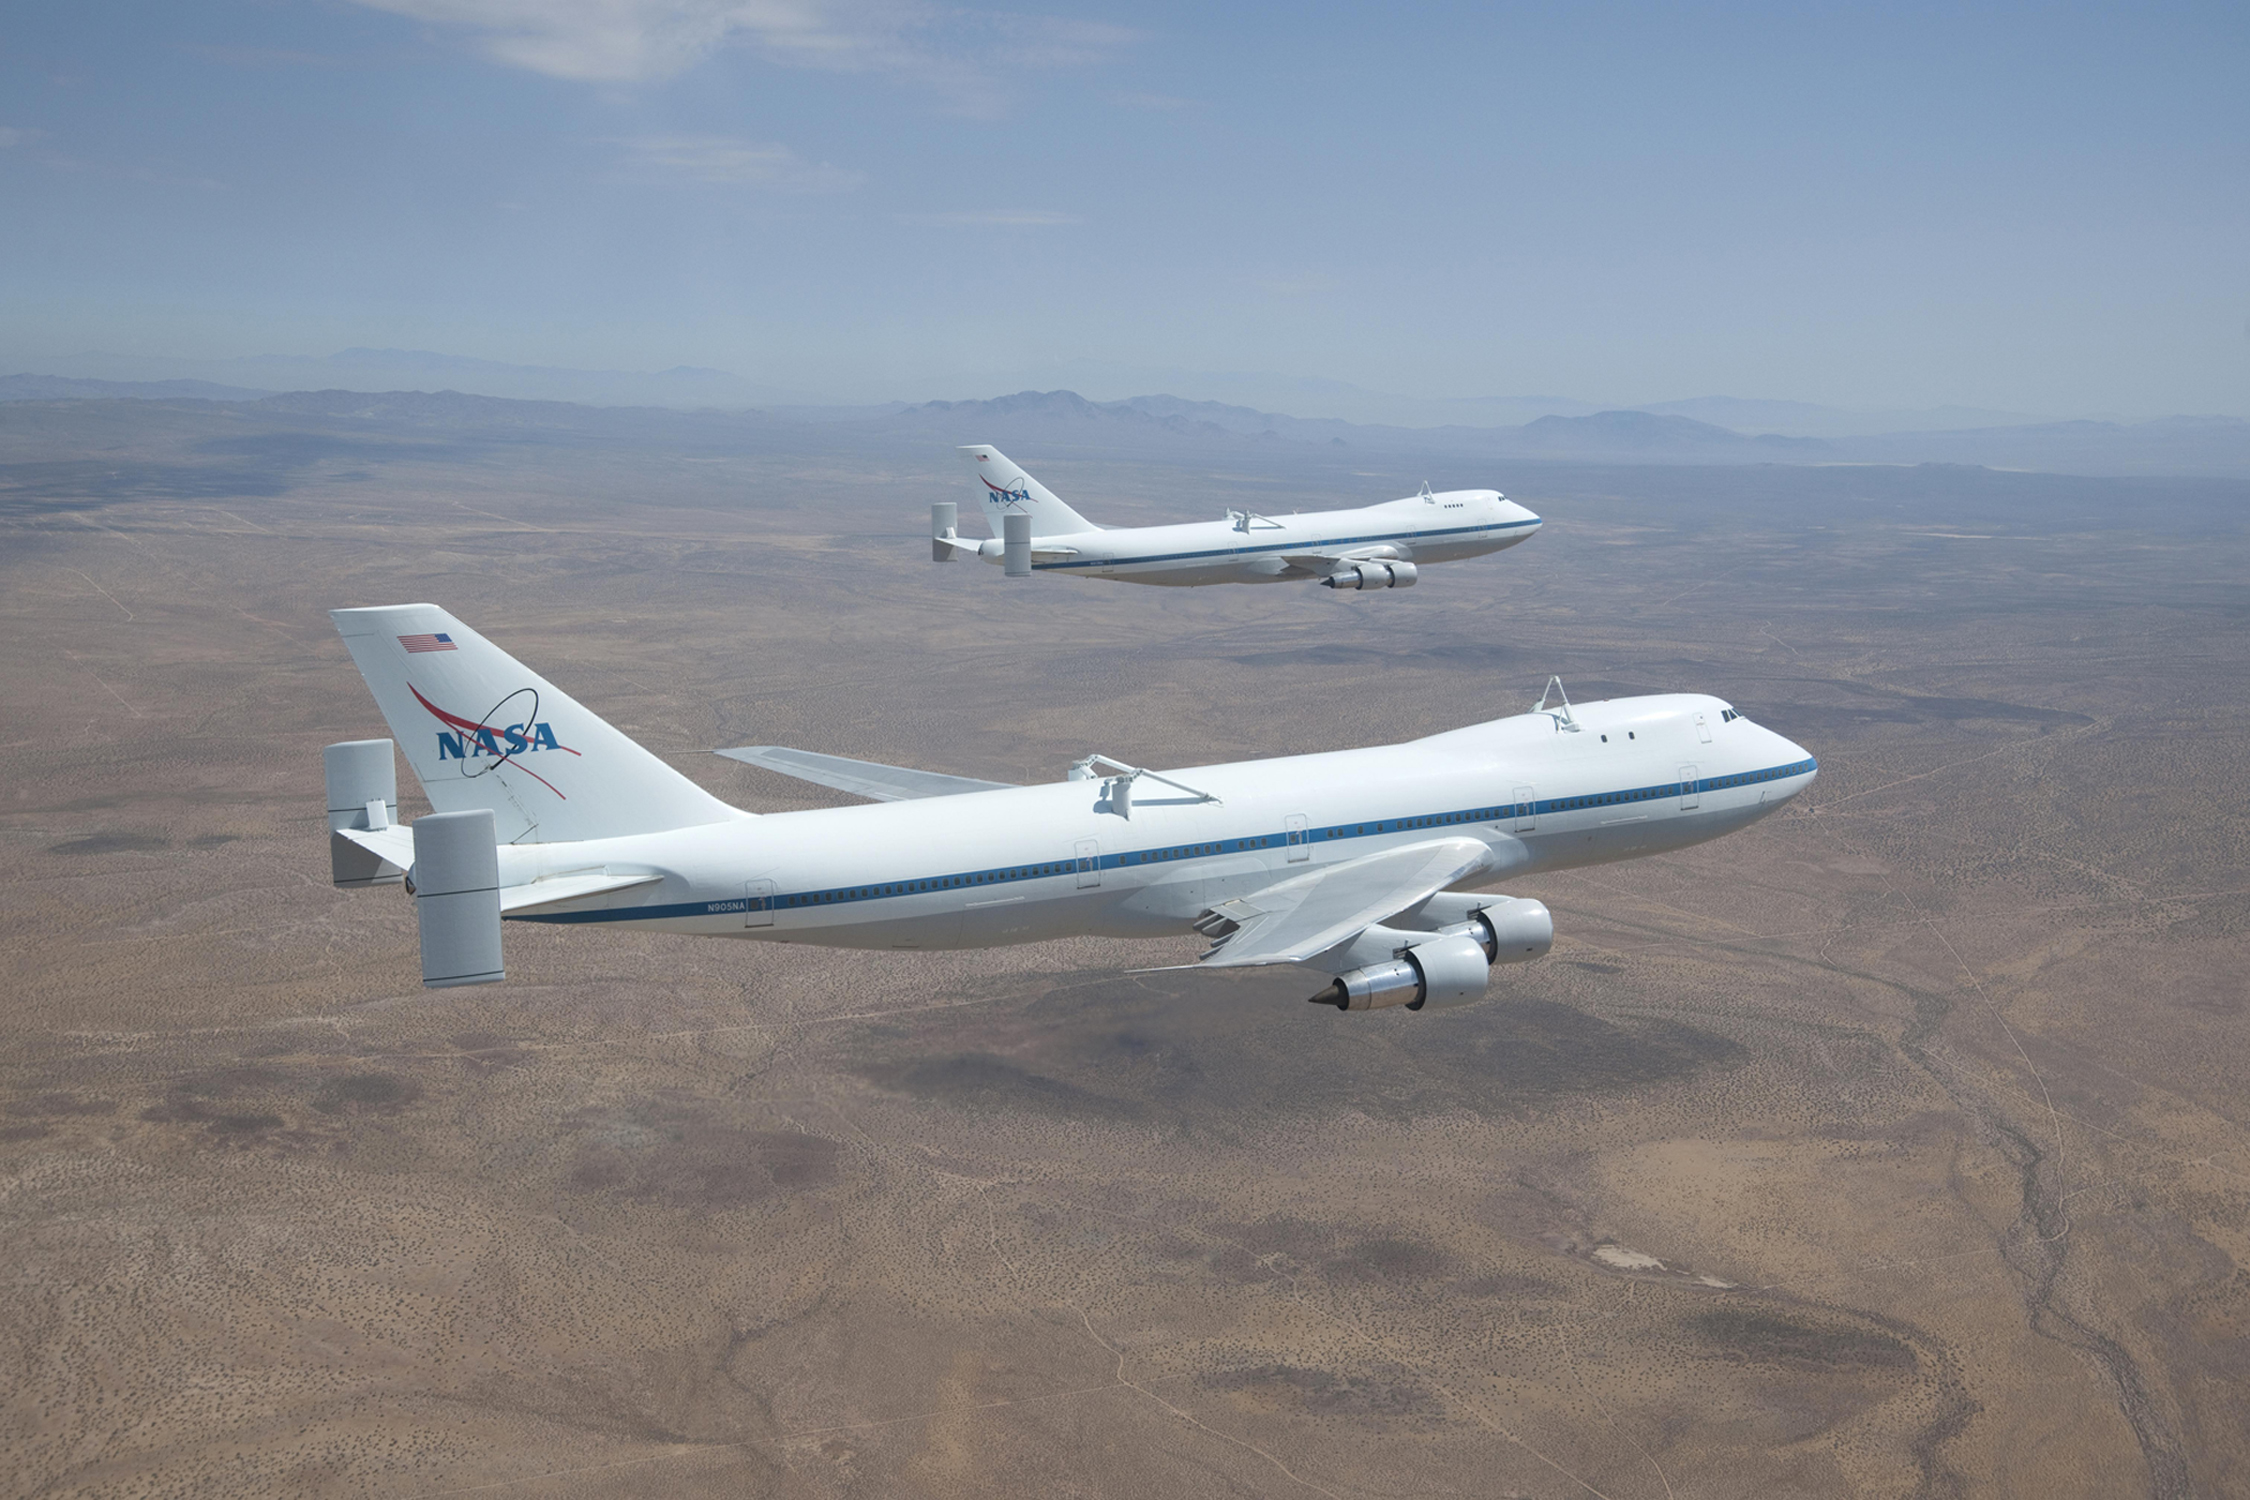 kelly afb space shuttle carrier aircraft - photo #32